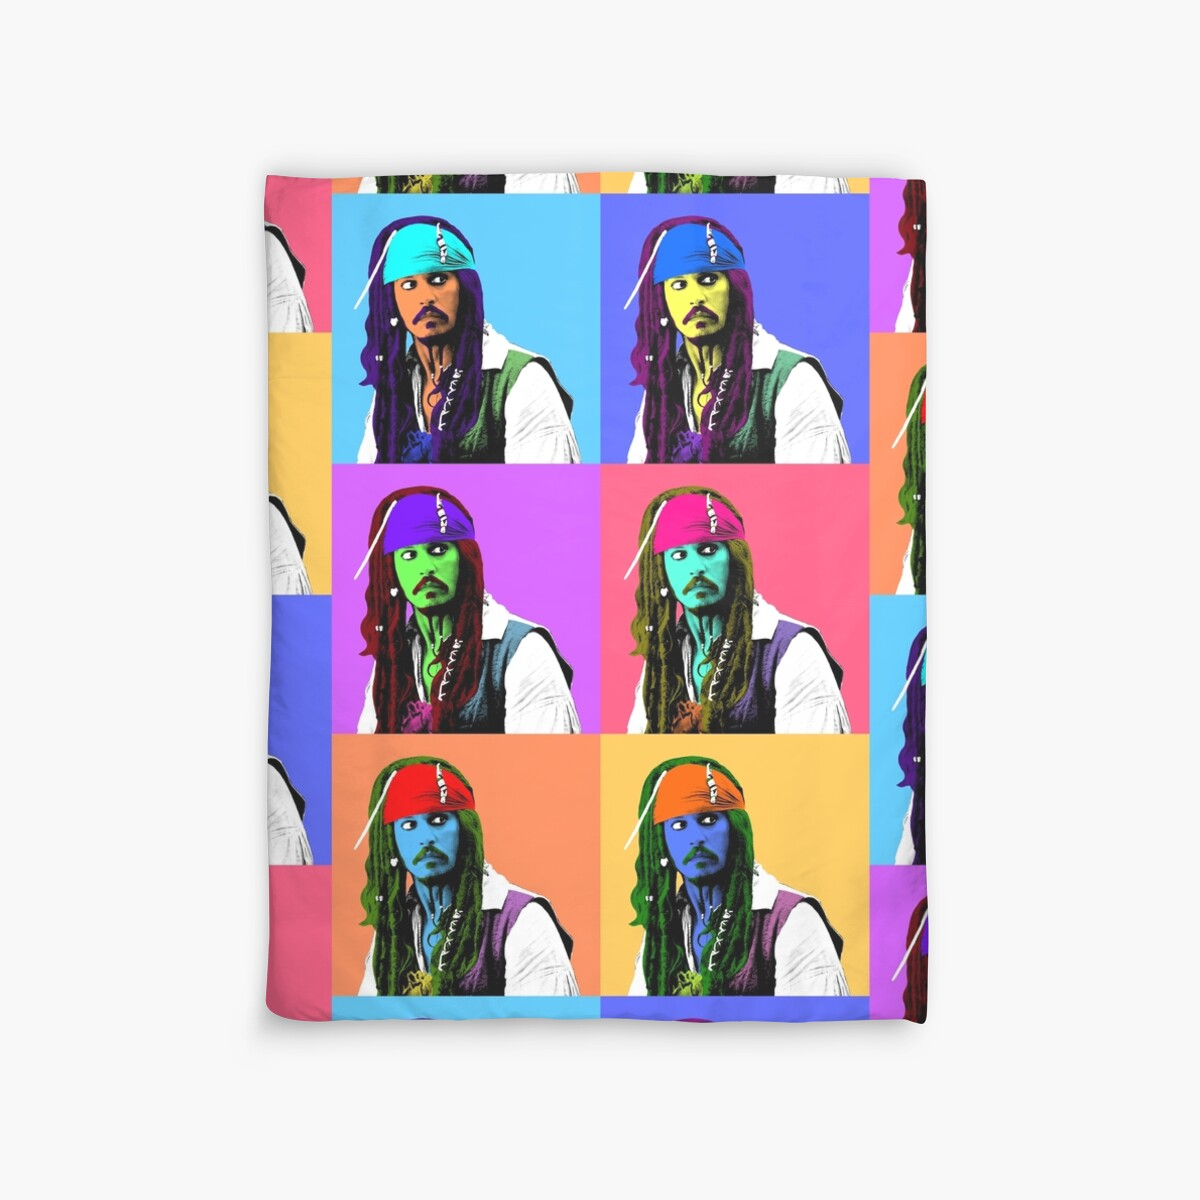 Quot Captain Jack Sparrow Andy Warhol Style Poster Pop Art 6